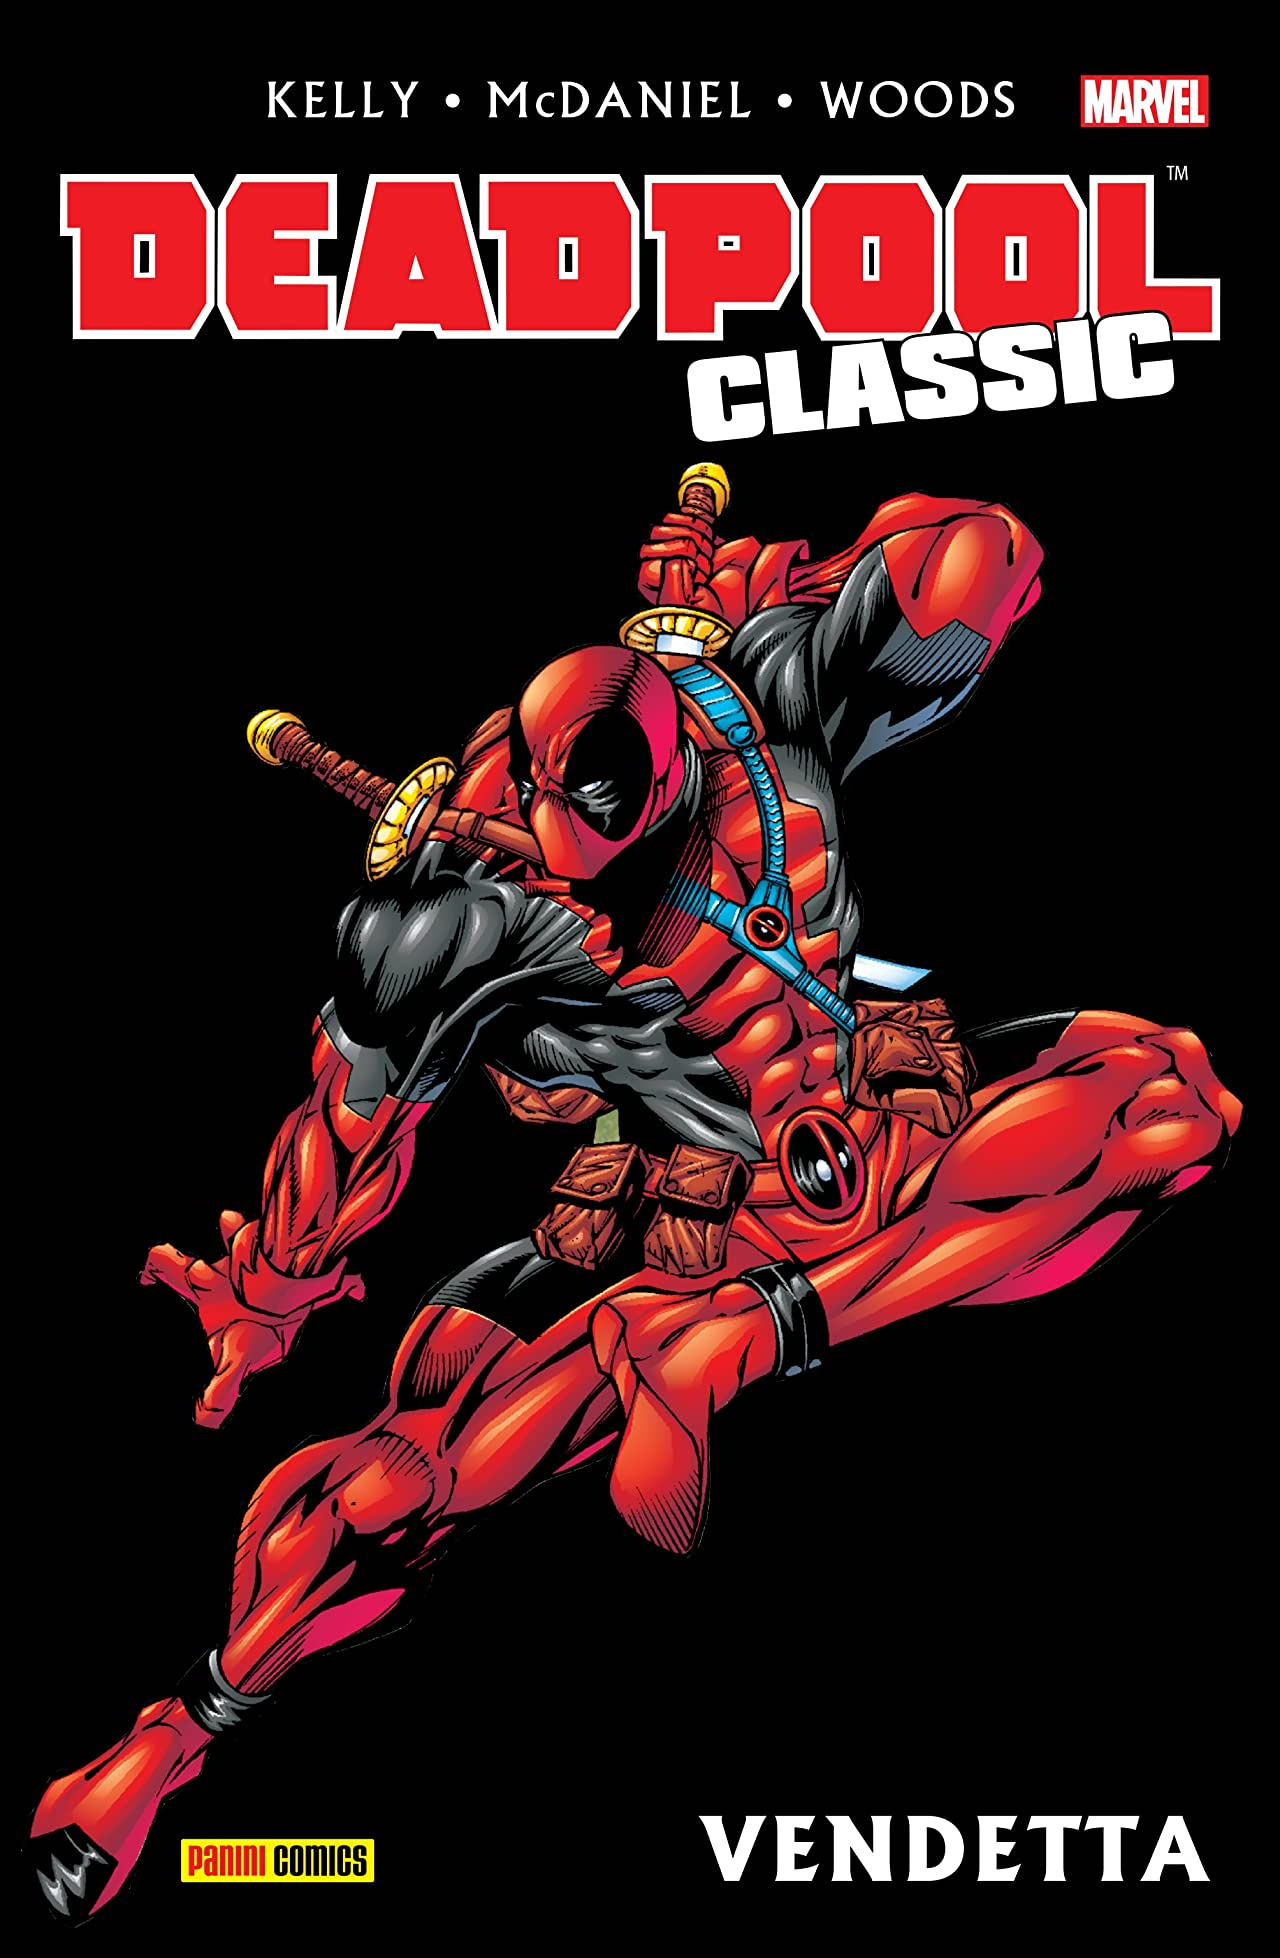 Deadpool Classic Vol. 6: Vendetta